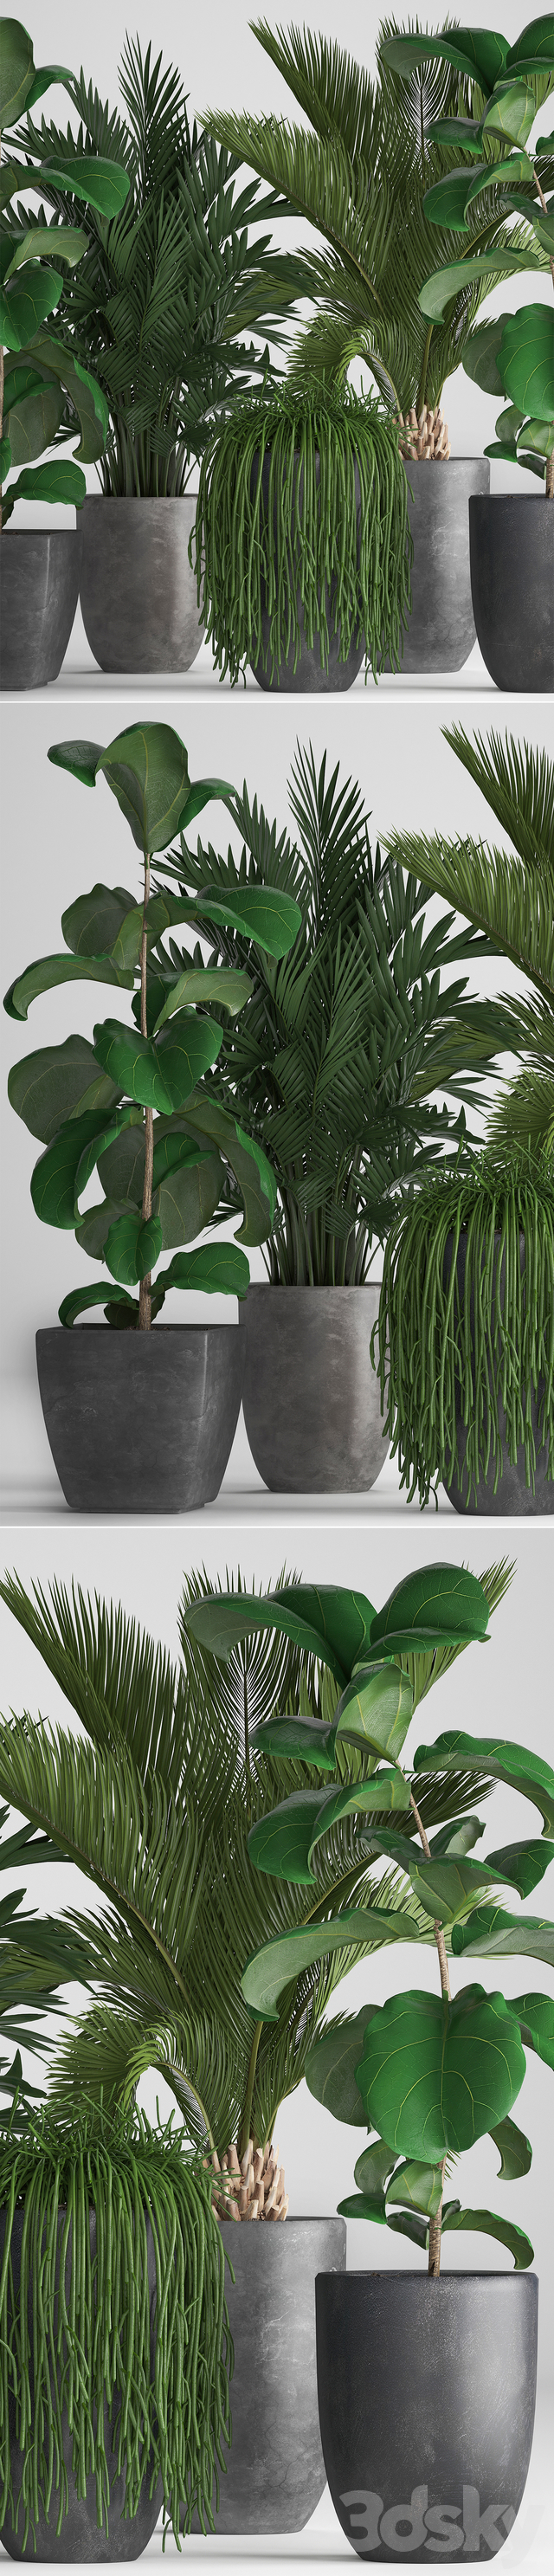 Plant collection 259.